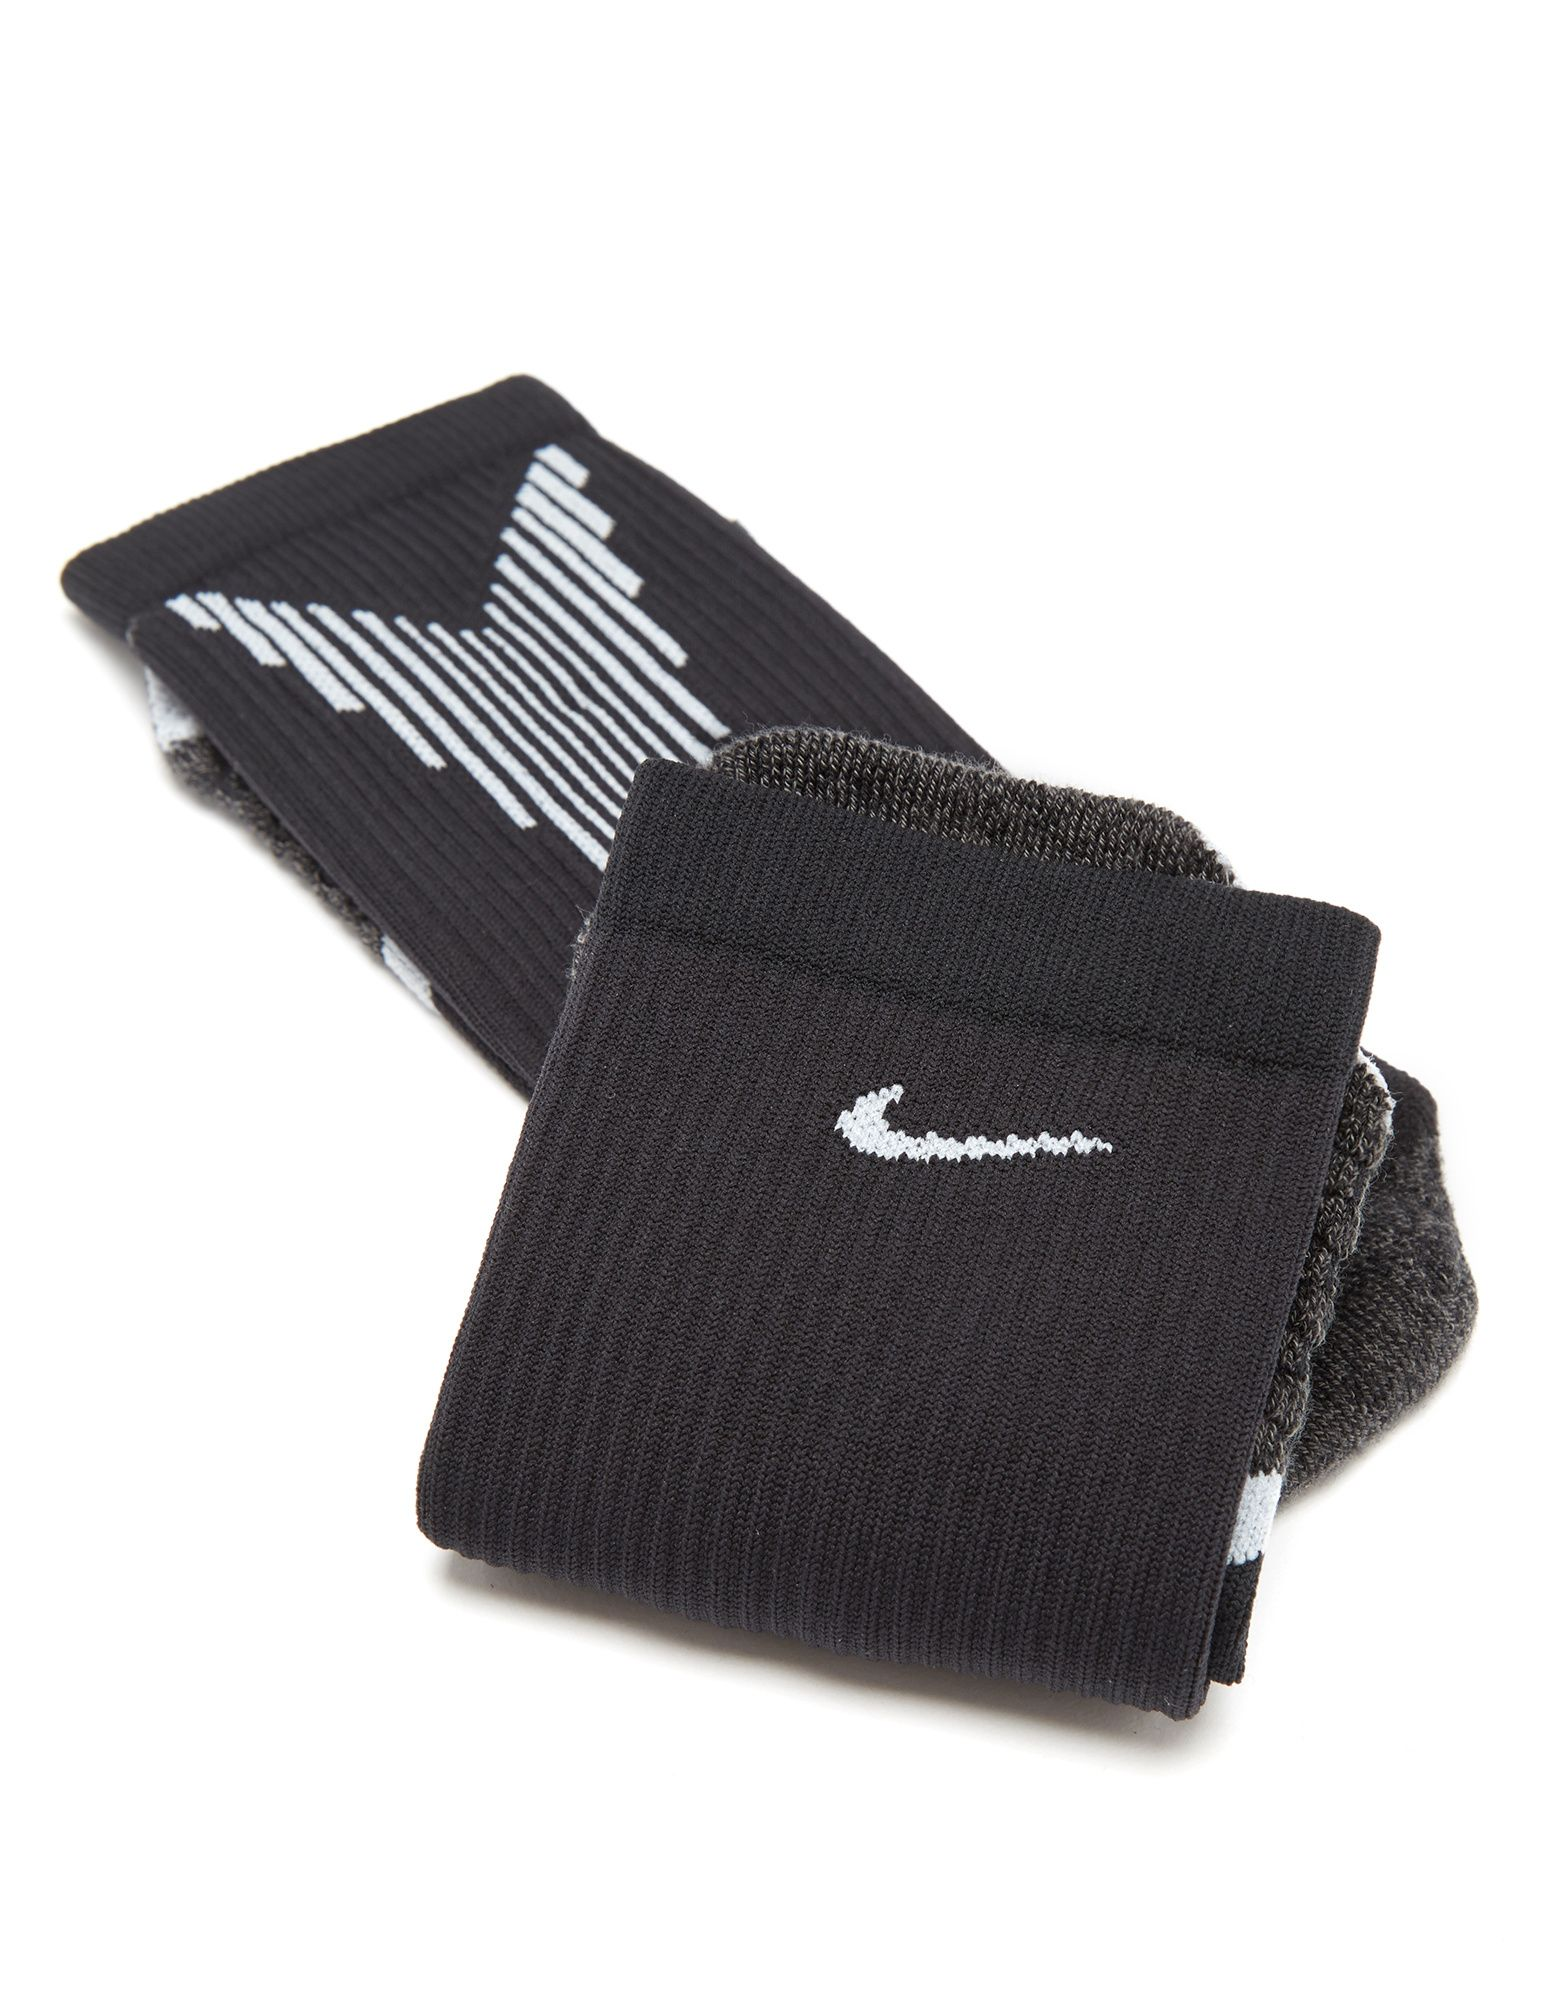 Nike Elite Running Cushion CRW Socks